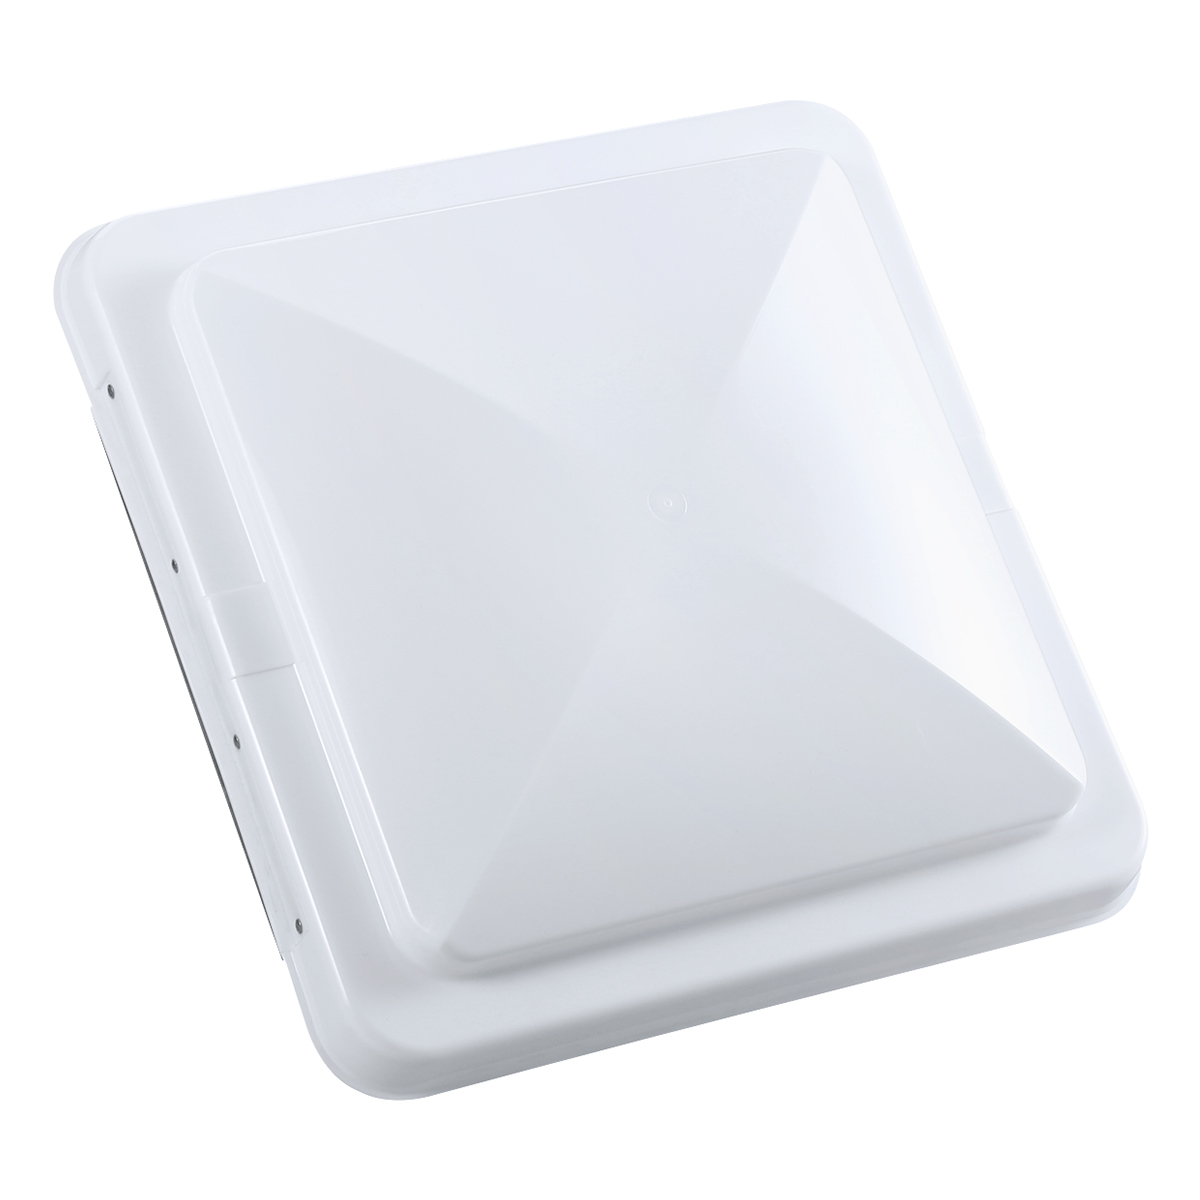 14 Quot X14 Quot Rv Roof Vent Lid Cover Replace Accessory For Rv